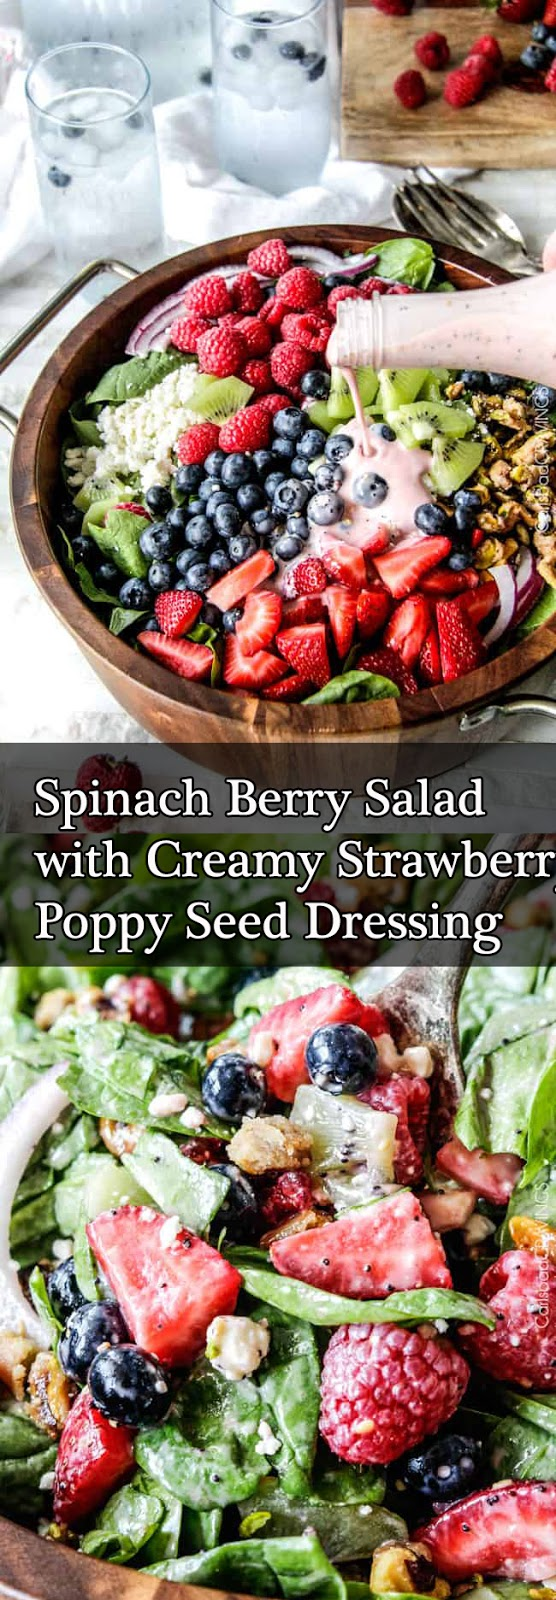 Spinach Berry Salad with Creamy Strawberry Poppy Seed Dressing Recipes